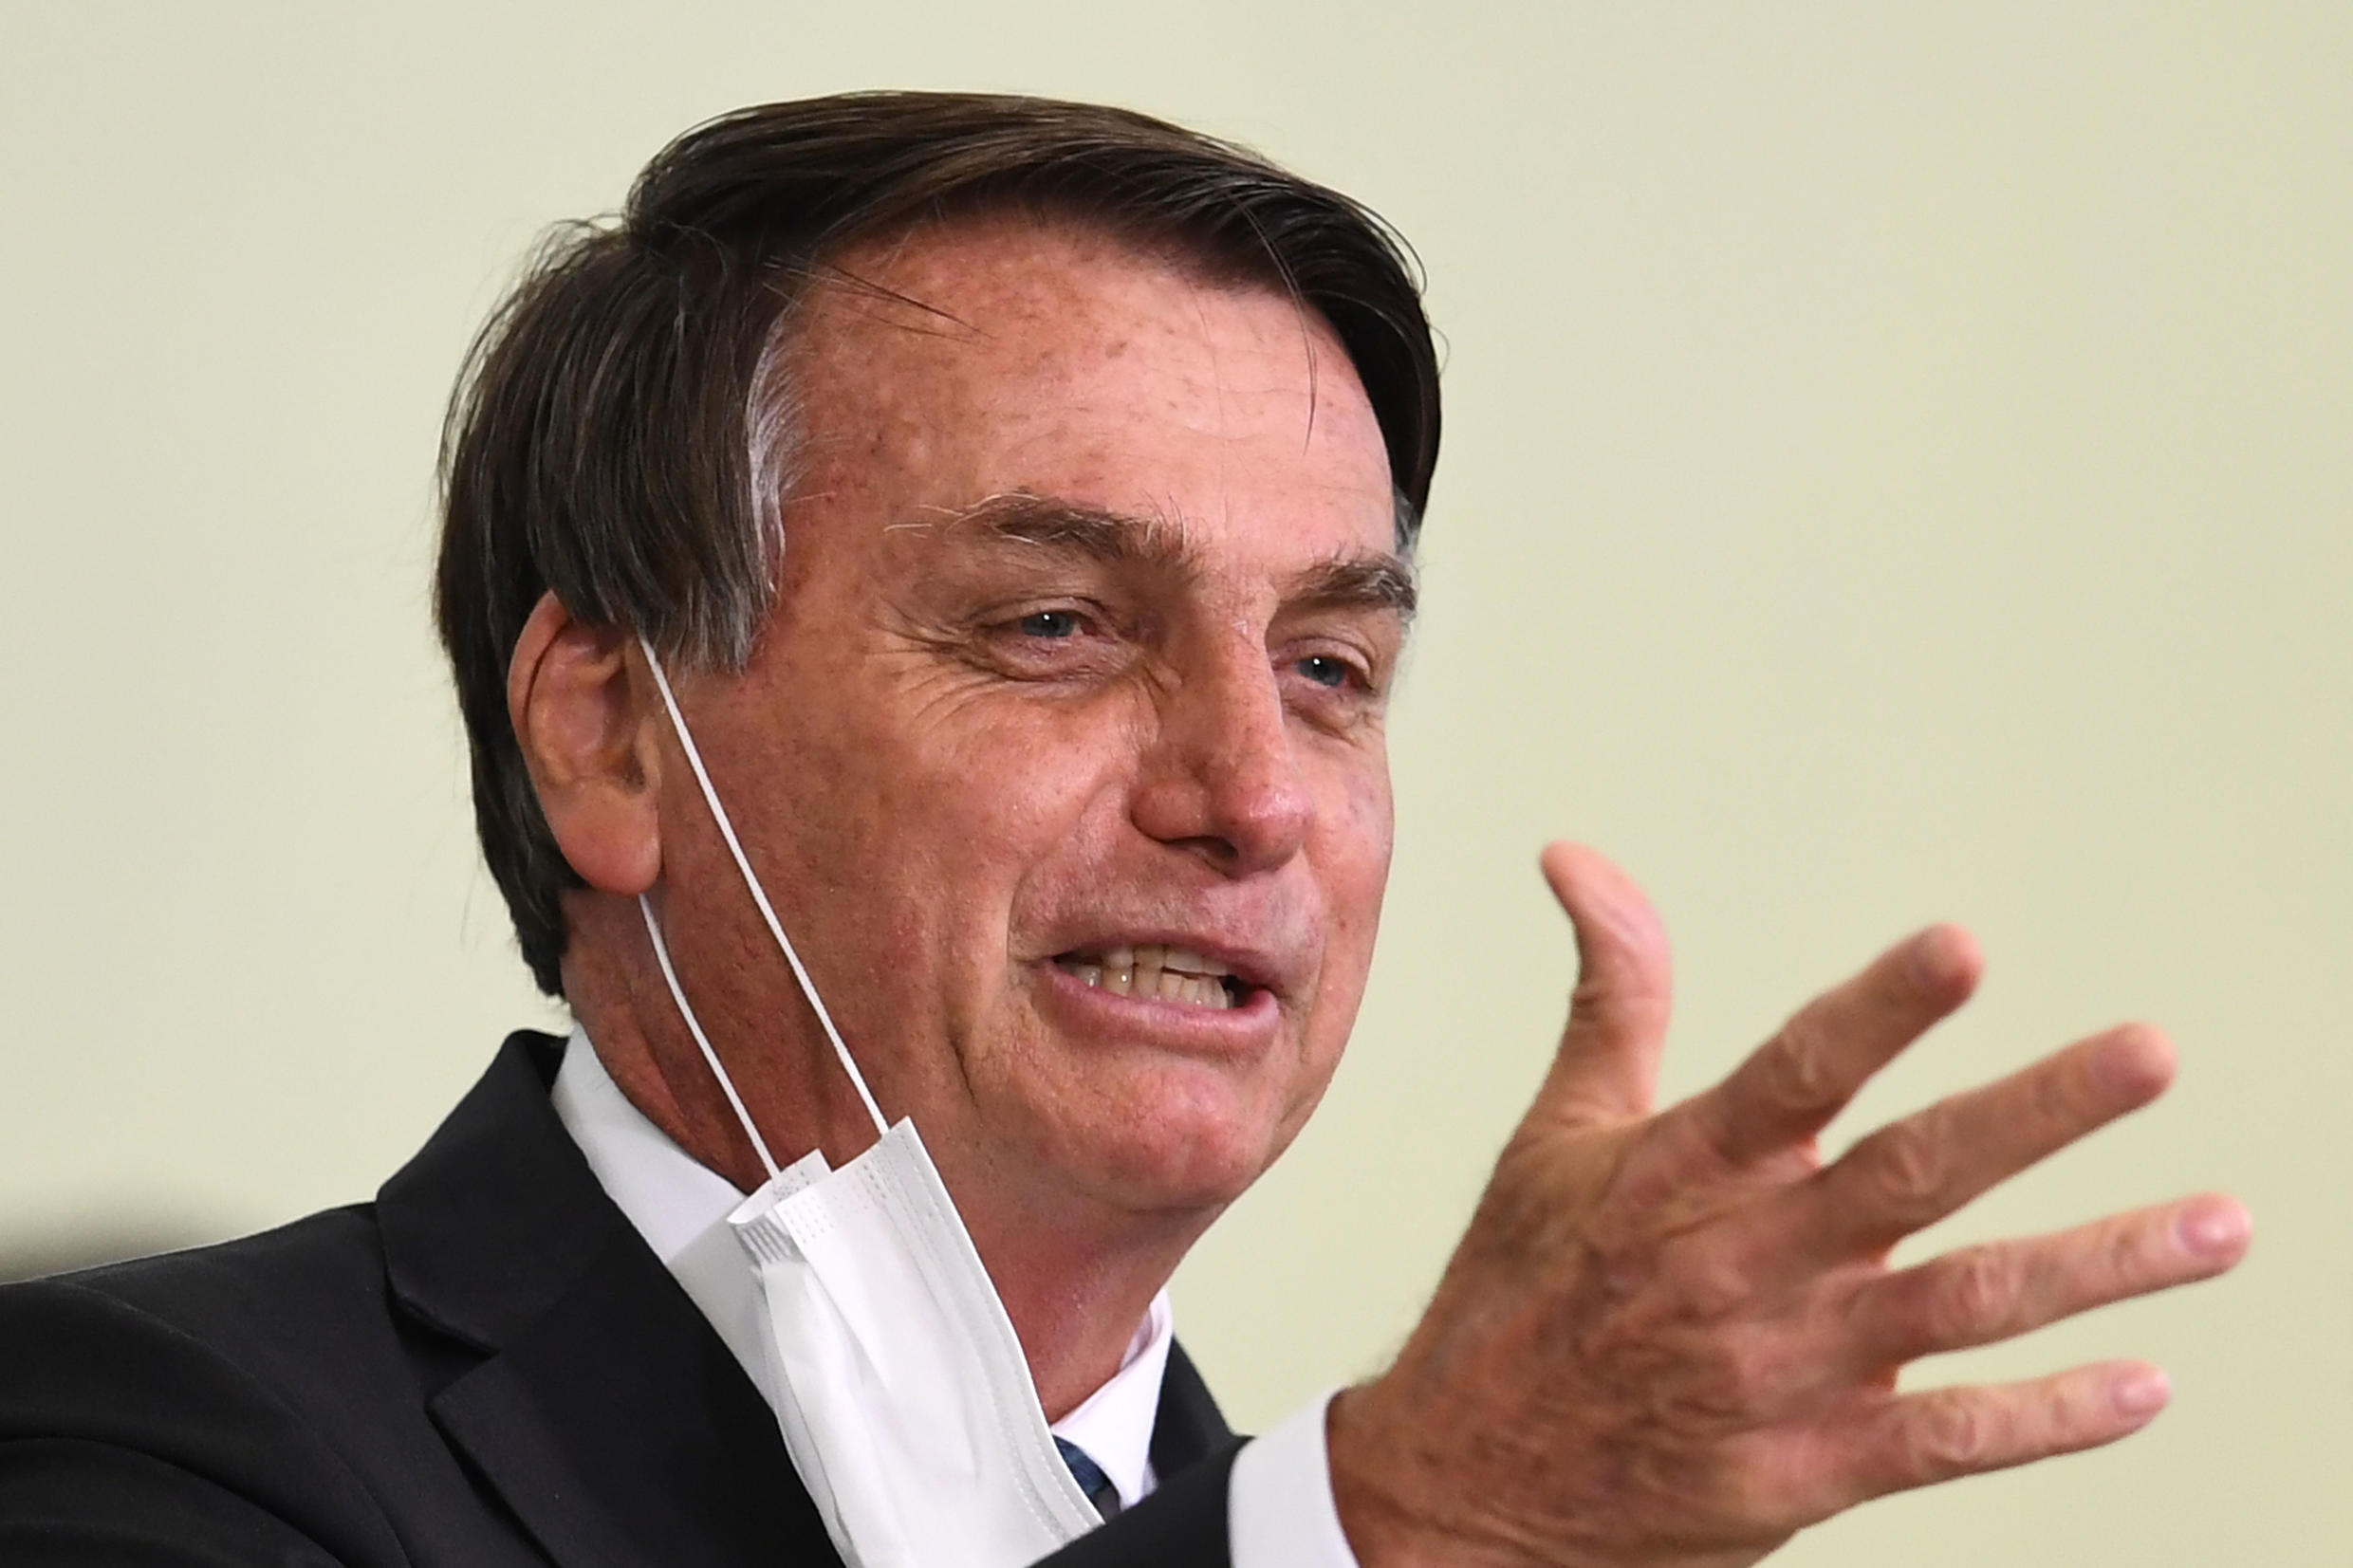 Brazilian President Jair Bolsonaro has had a series of health issues, including four surgeries stemming from an attack in which he was stabbed in the abdomen